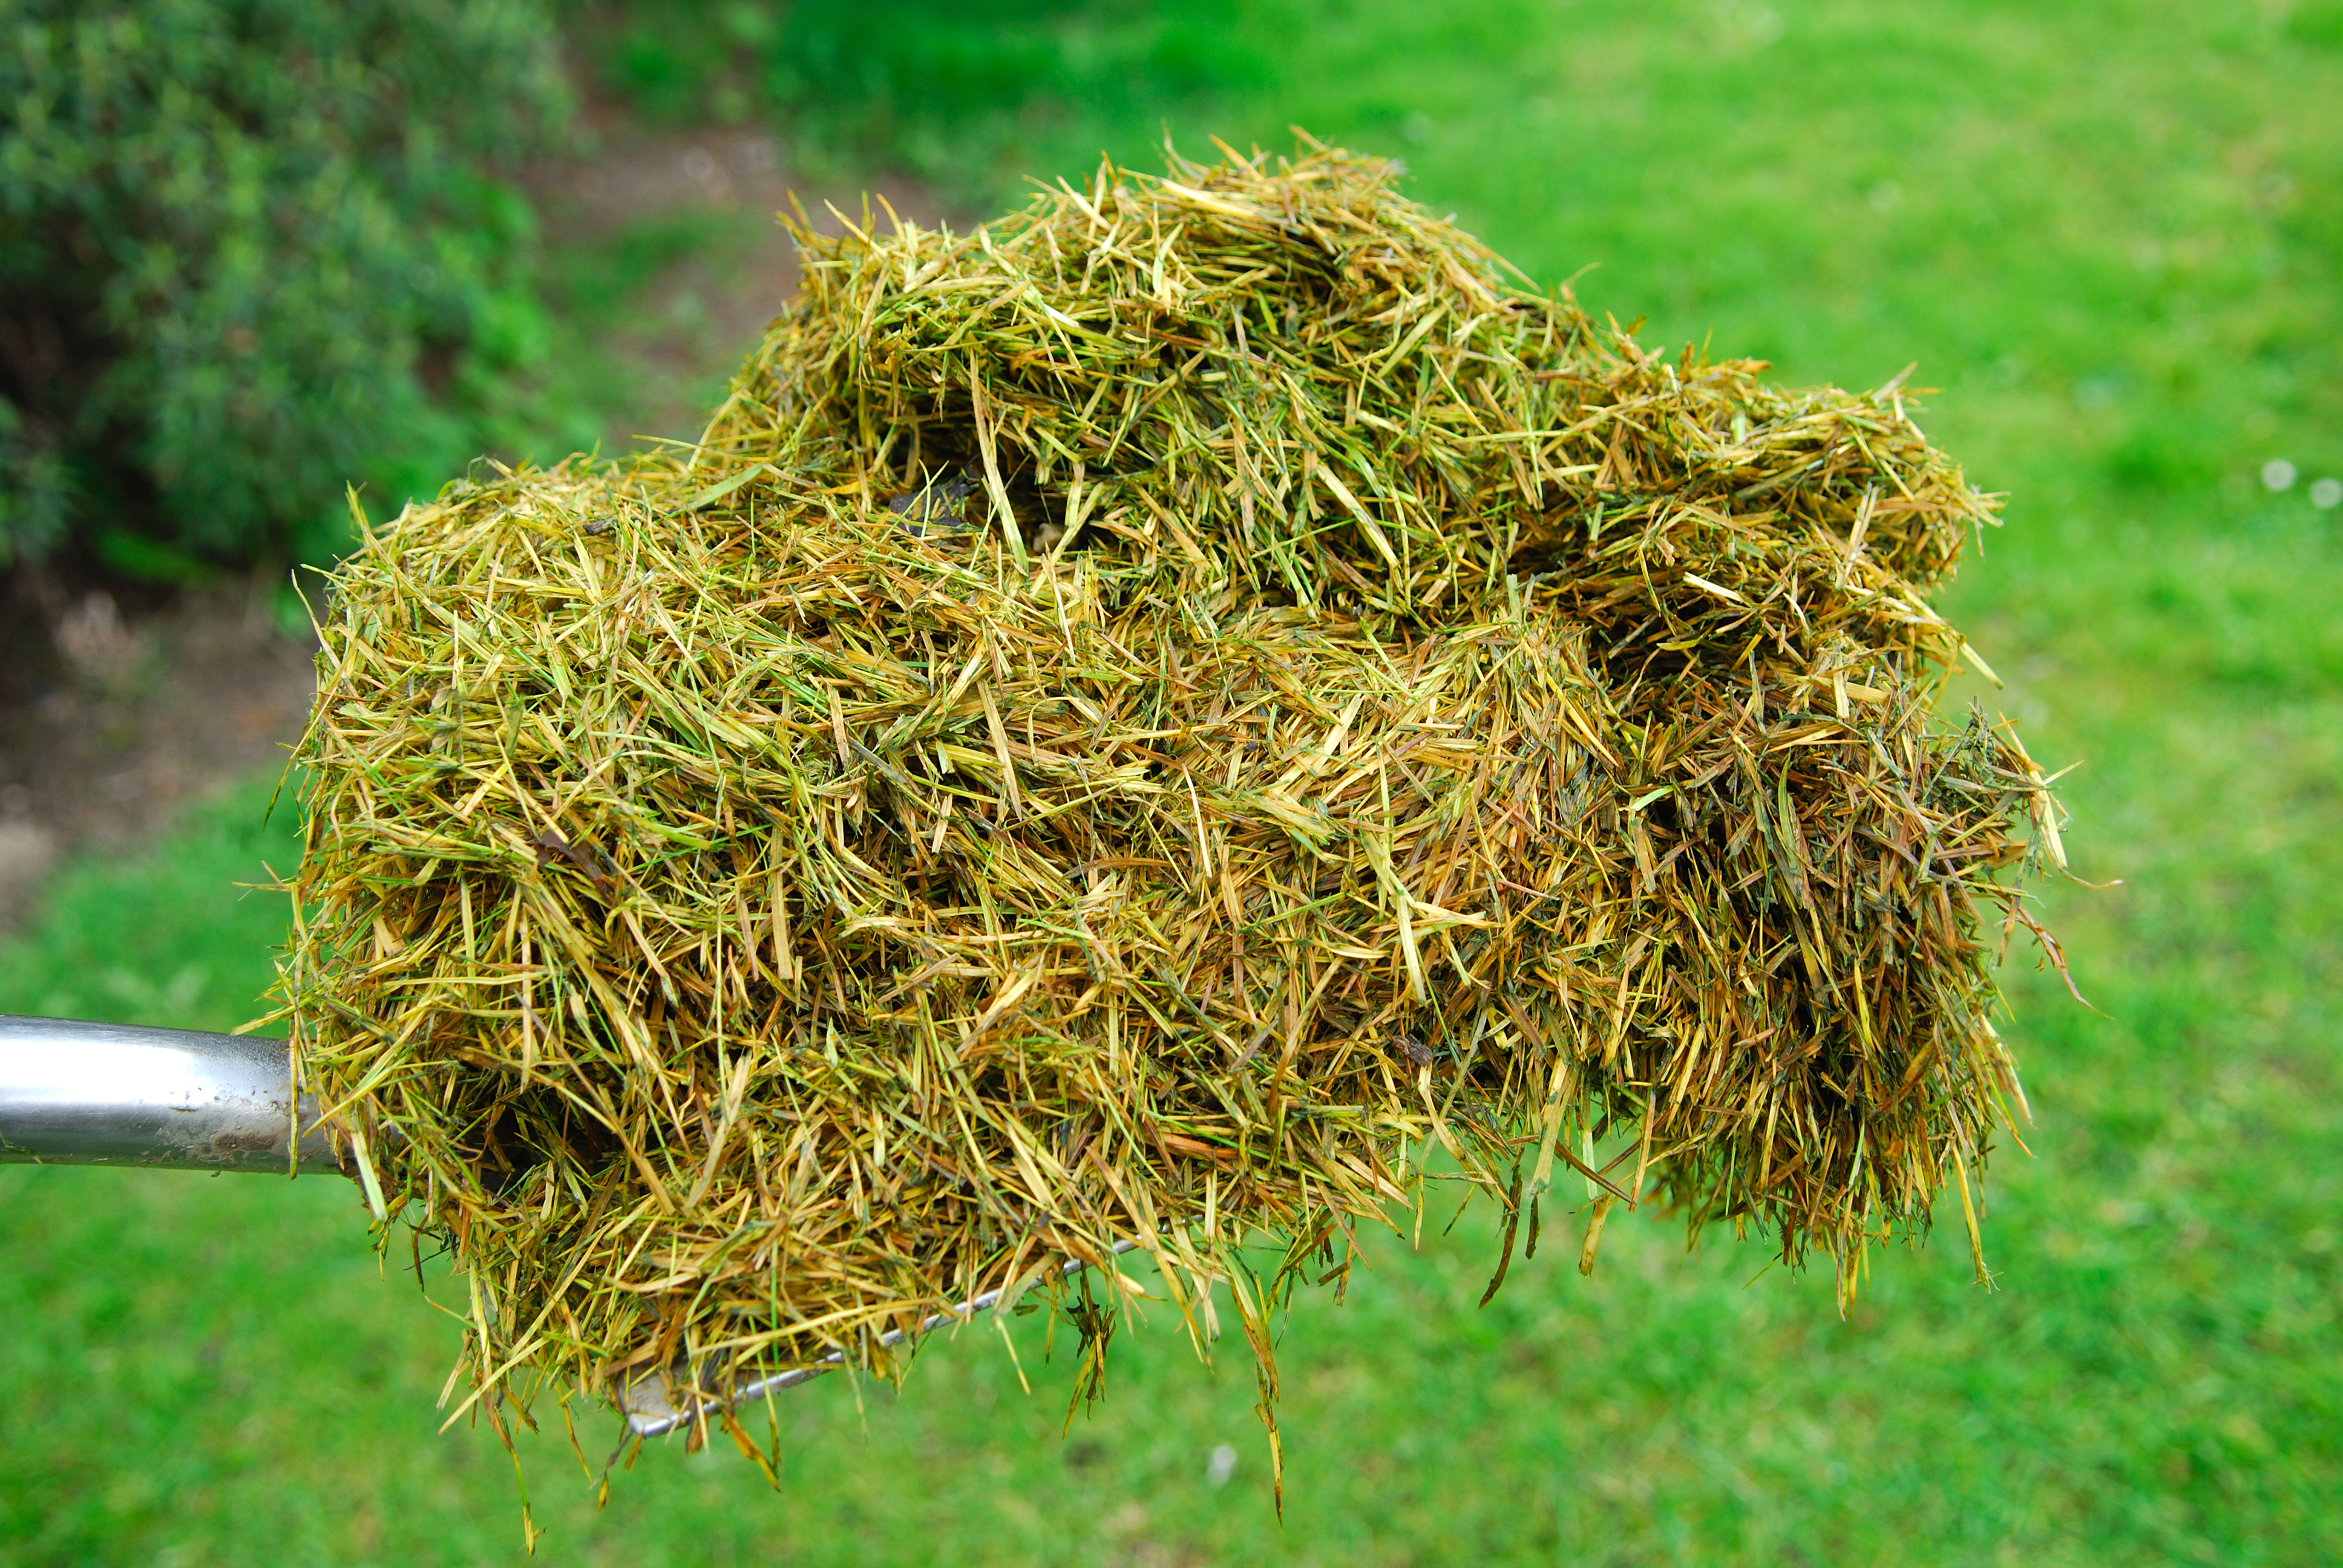 How to Handle a Large Quantity of Grass Clippings | Home